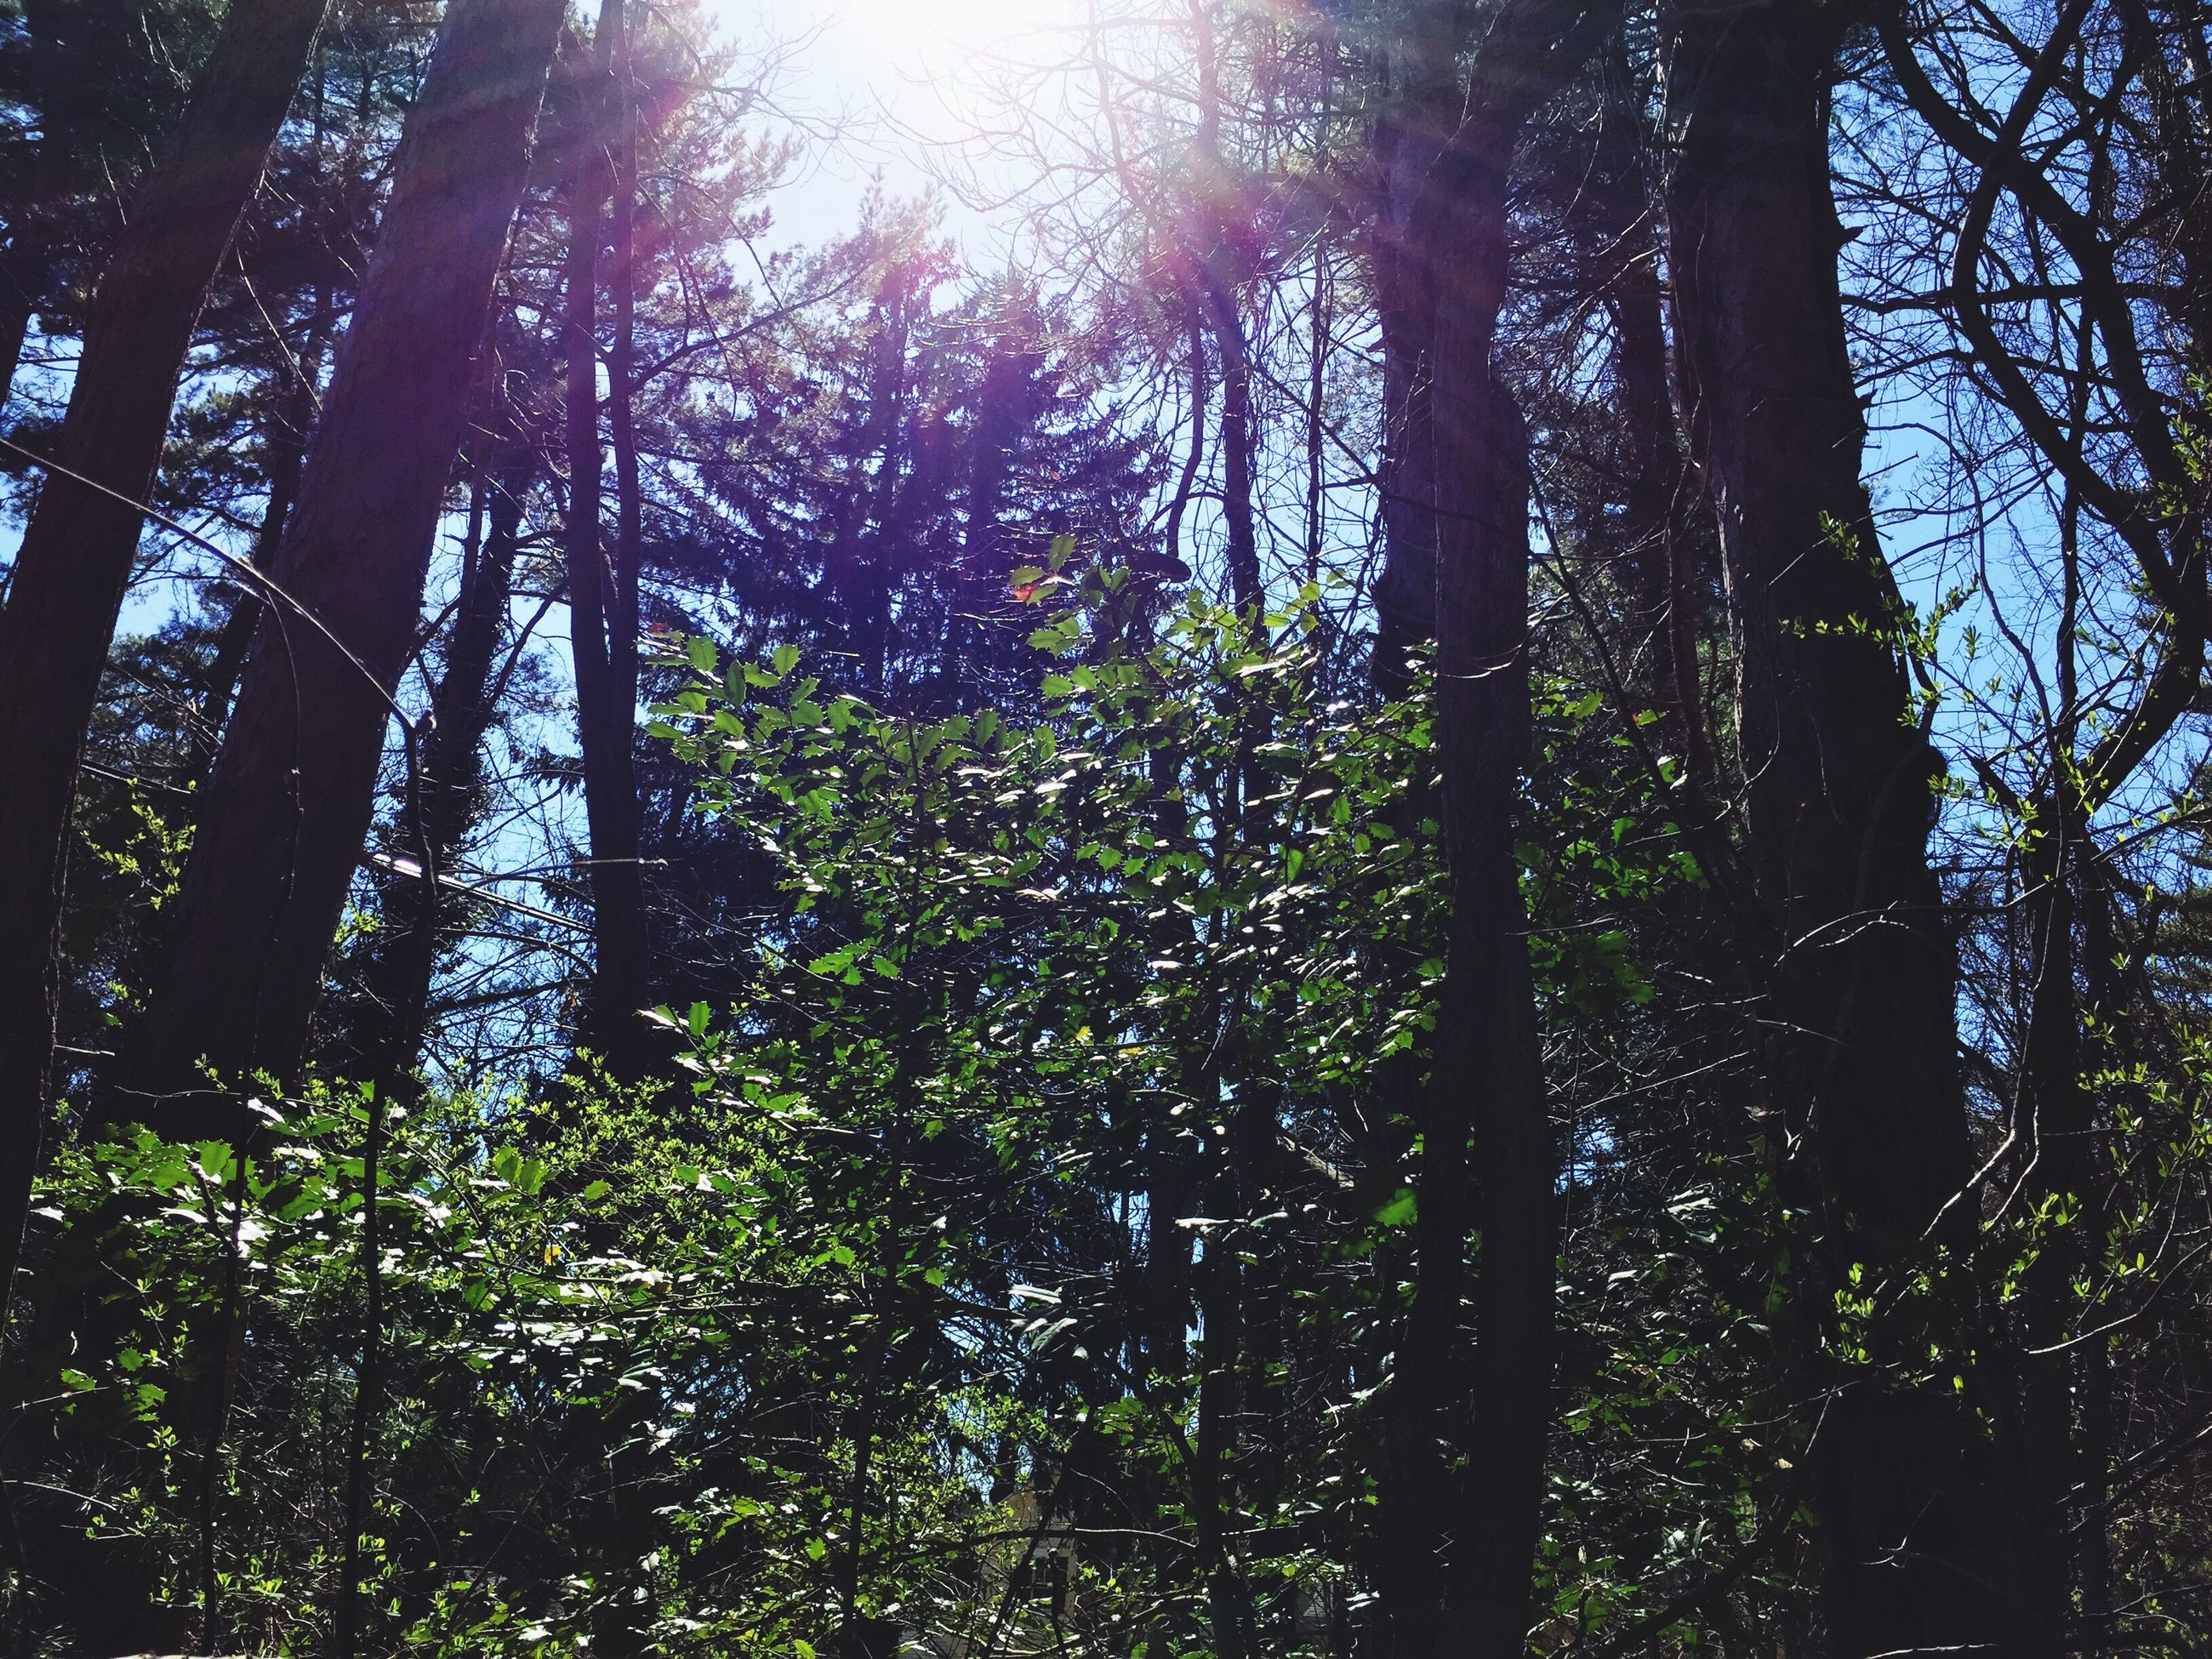 tree, growth, tree trunk, tranquility, sunlight, branch, nature, forest, sun, low angle view, green color, beauty in nature, sunbeam, tranquil scene, woodland, lens flare, day, outdoors, scenics, no people